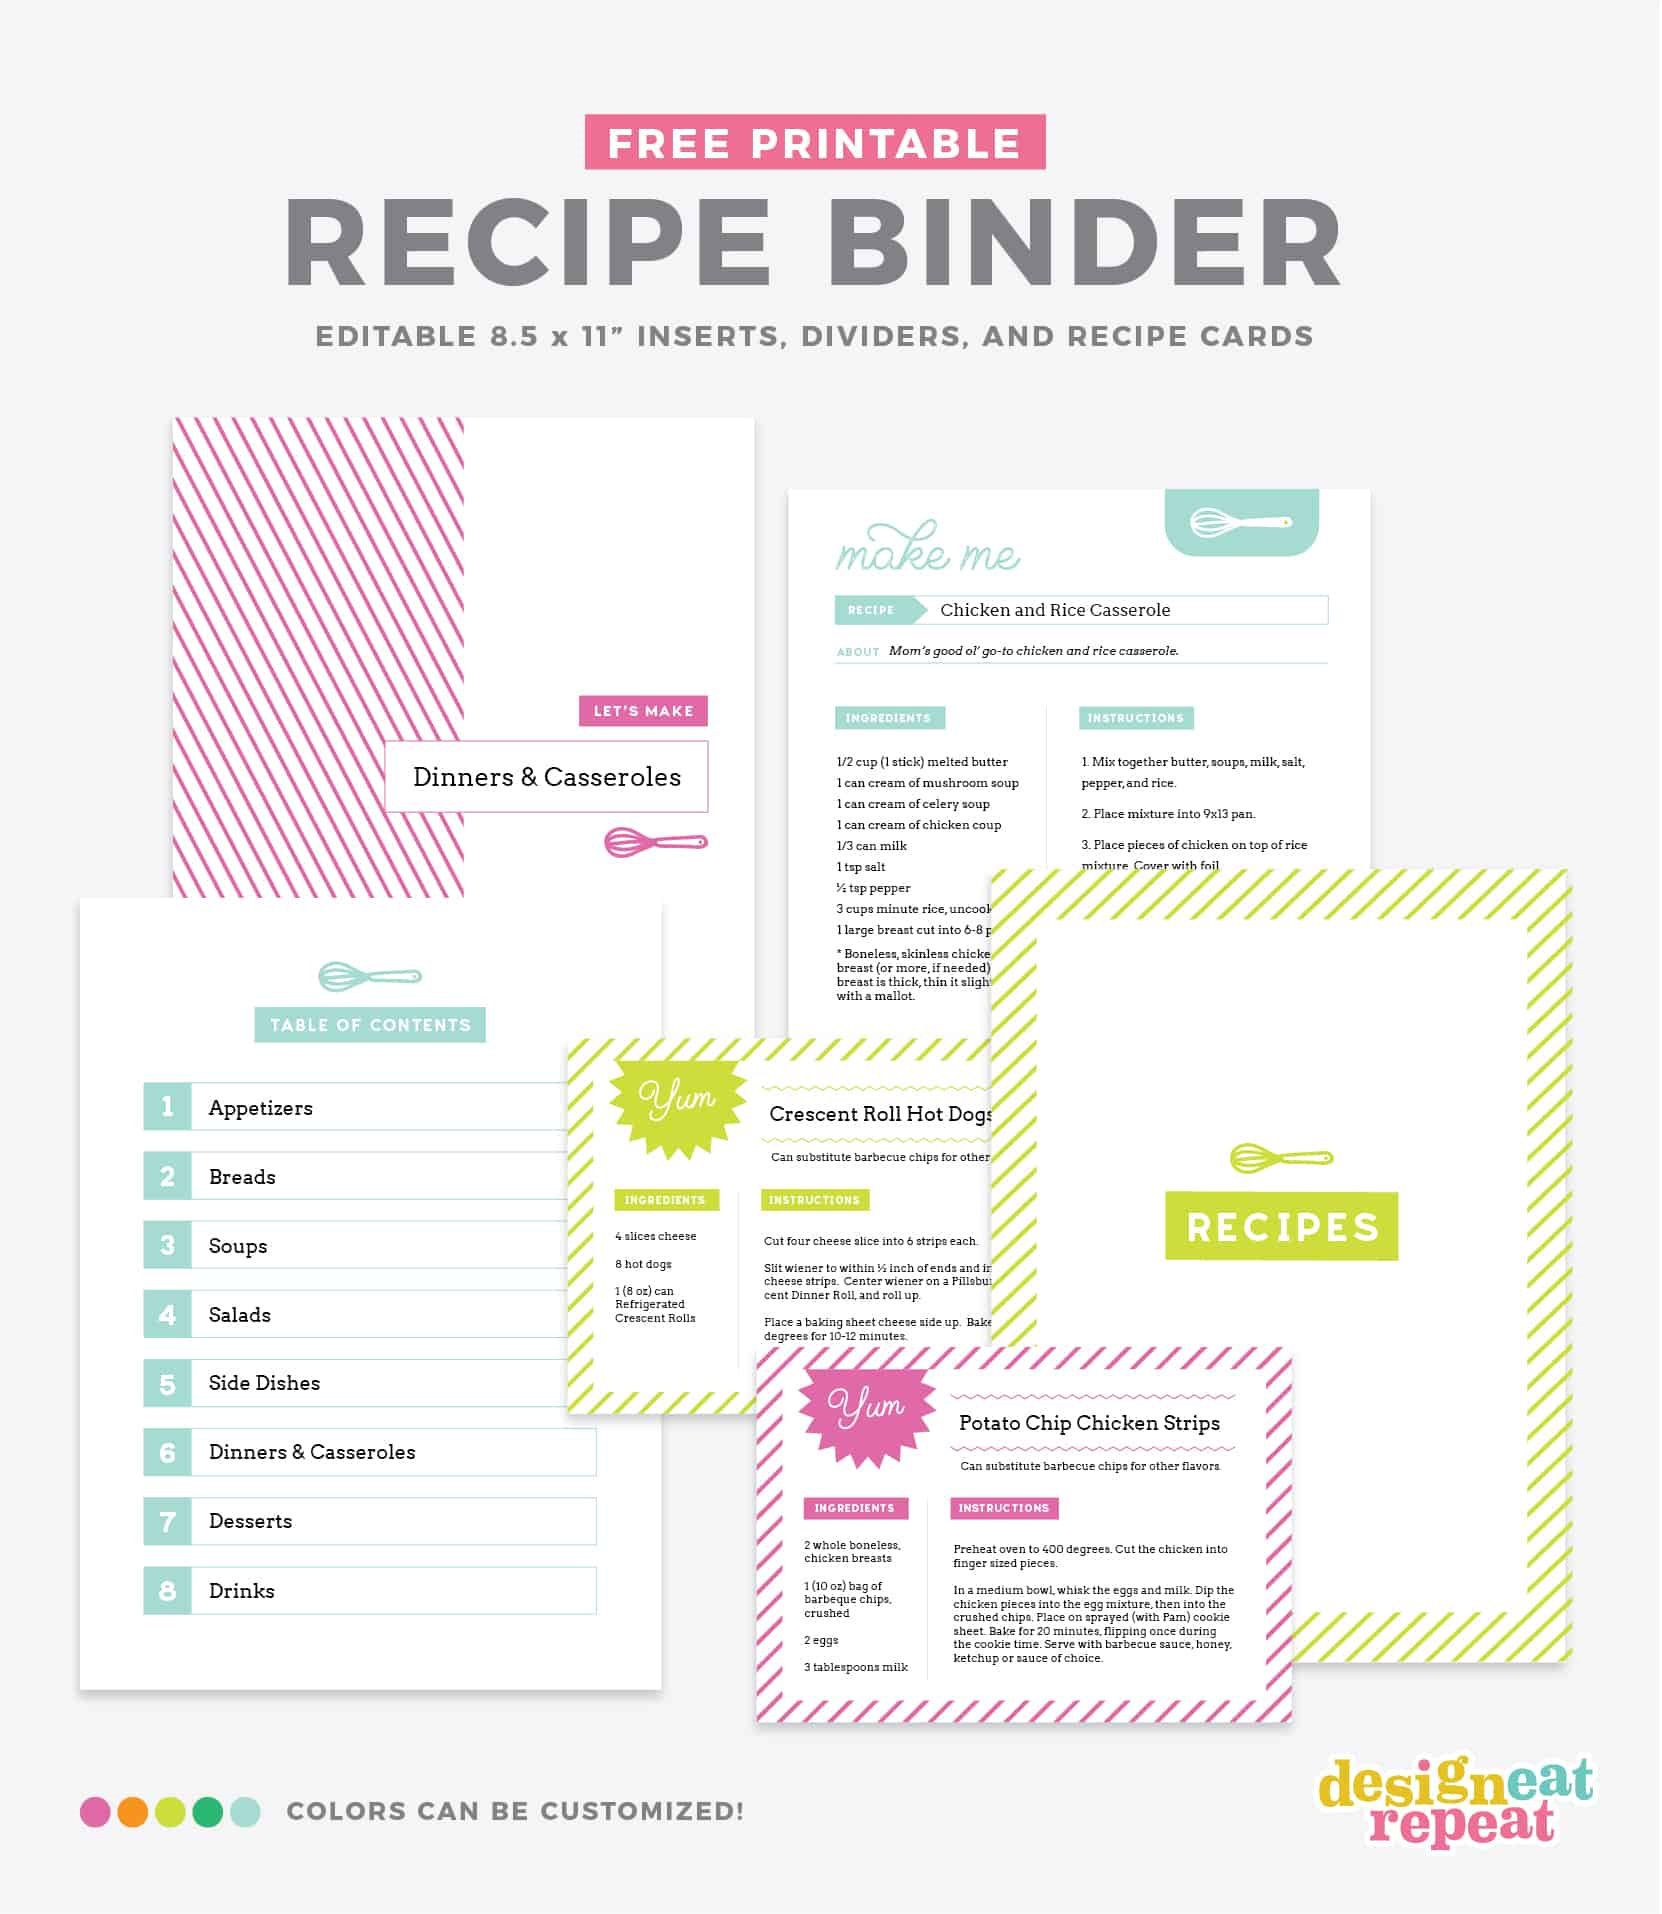 005 Formidable Free Make Your Own Cookbook Template Download Photo Full